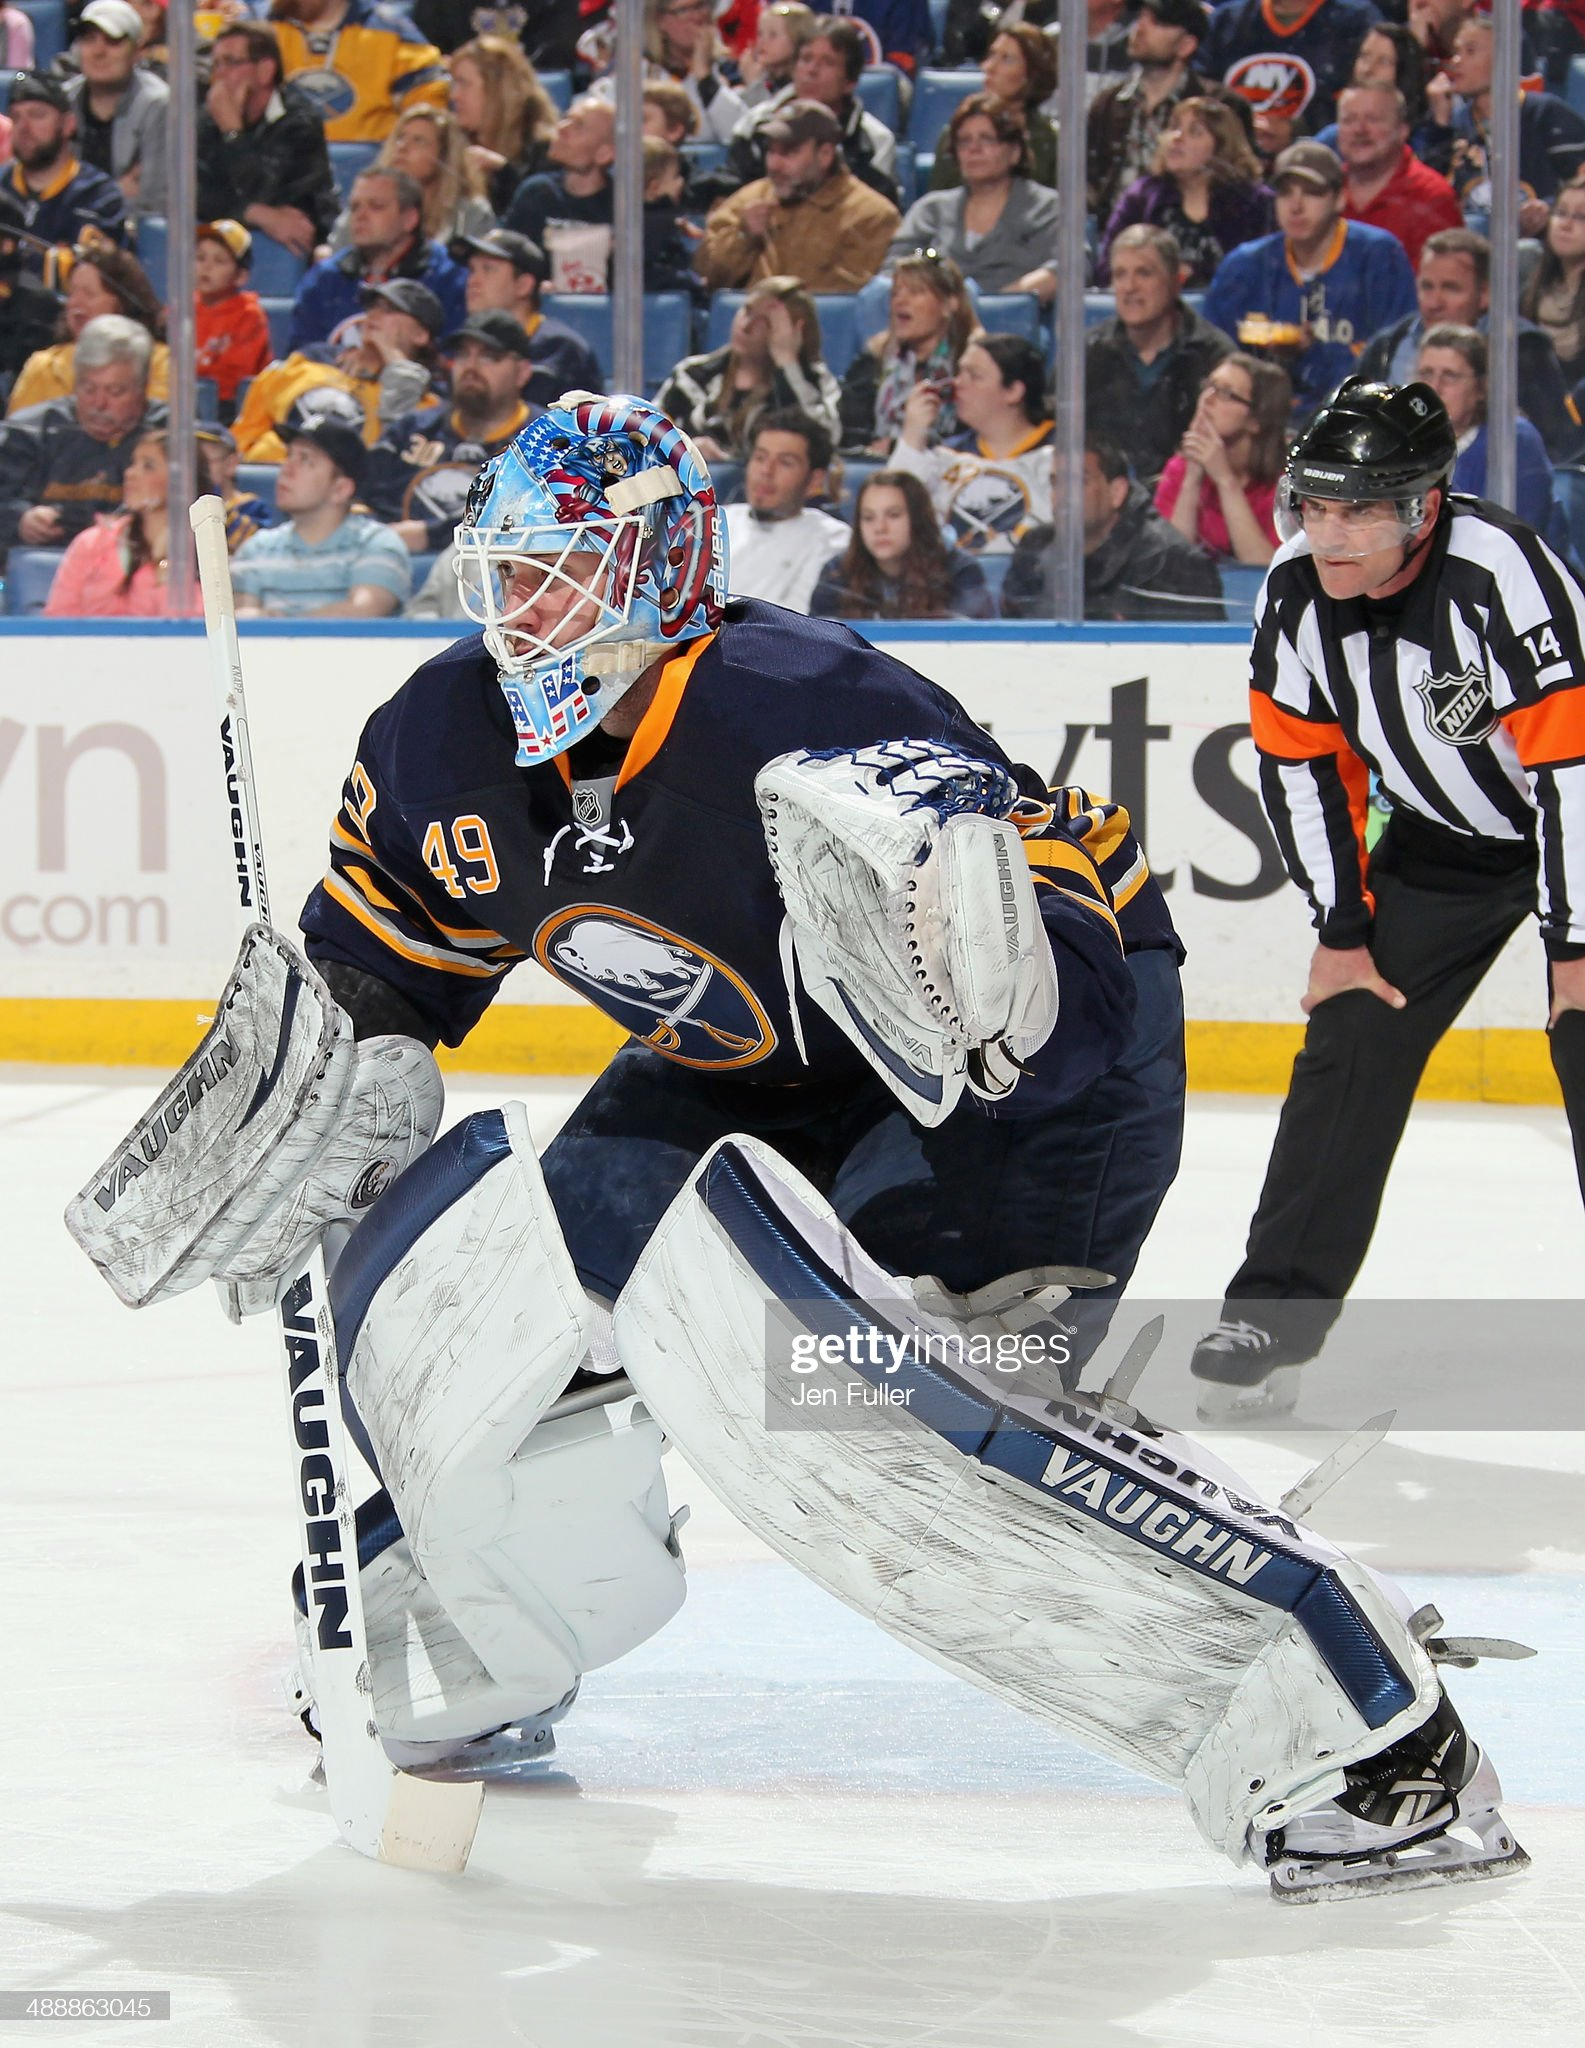 connor-knapp-of-the-buffalo-sabres-prepa